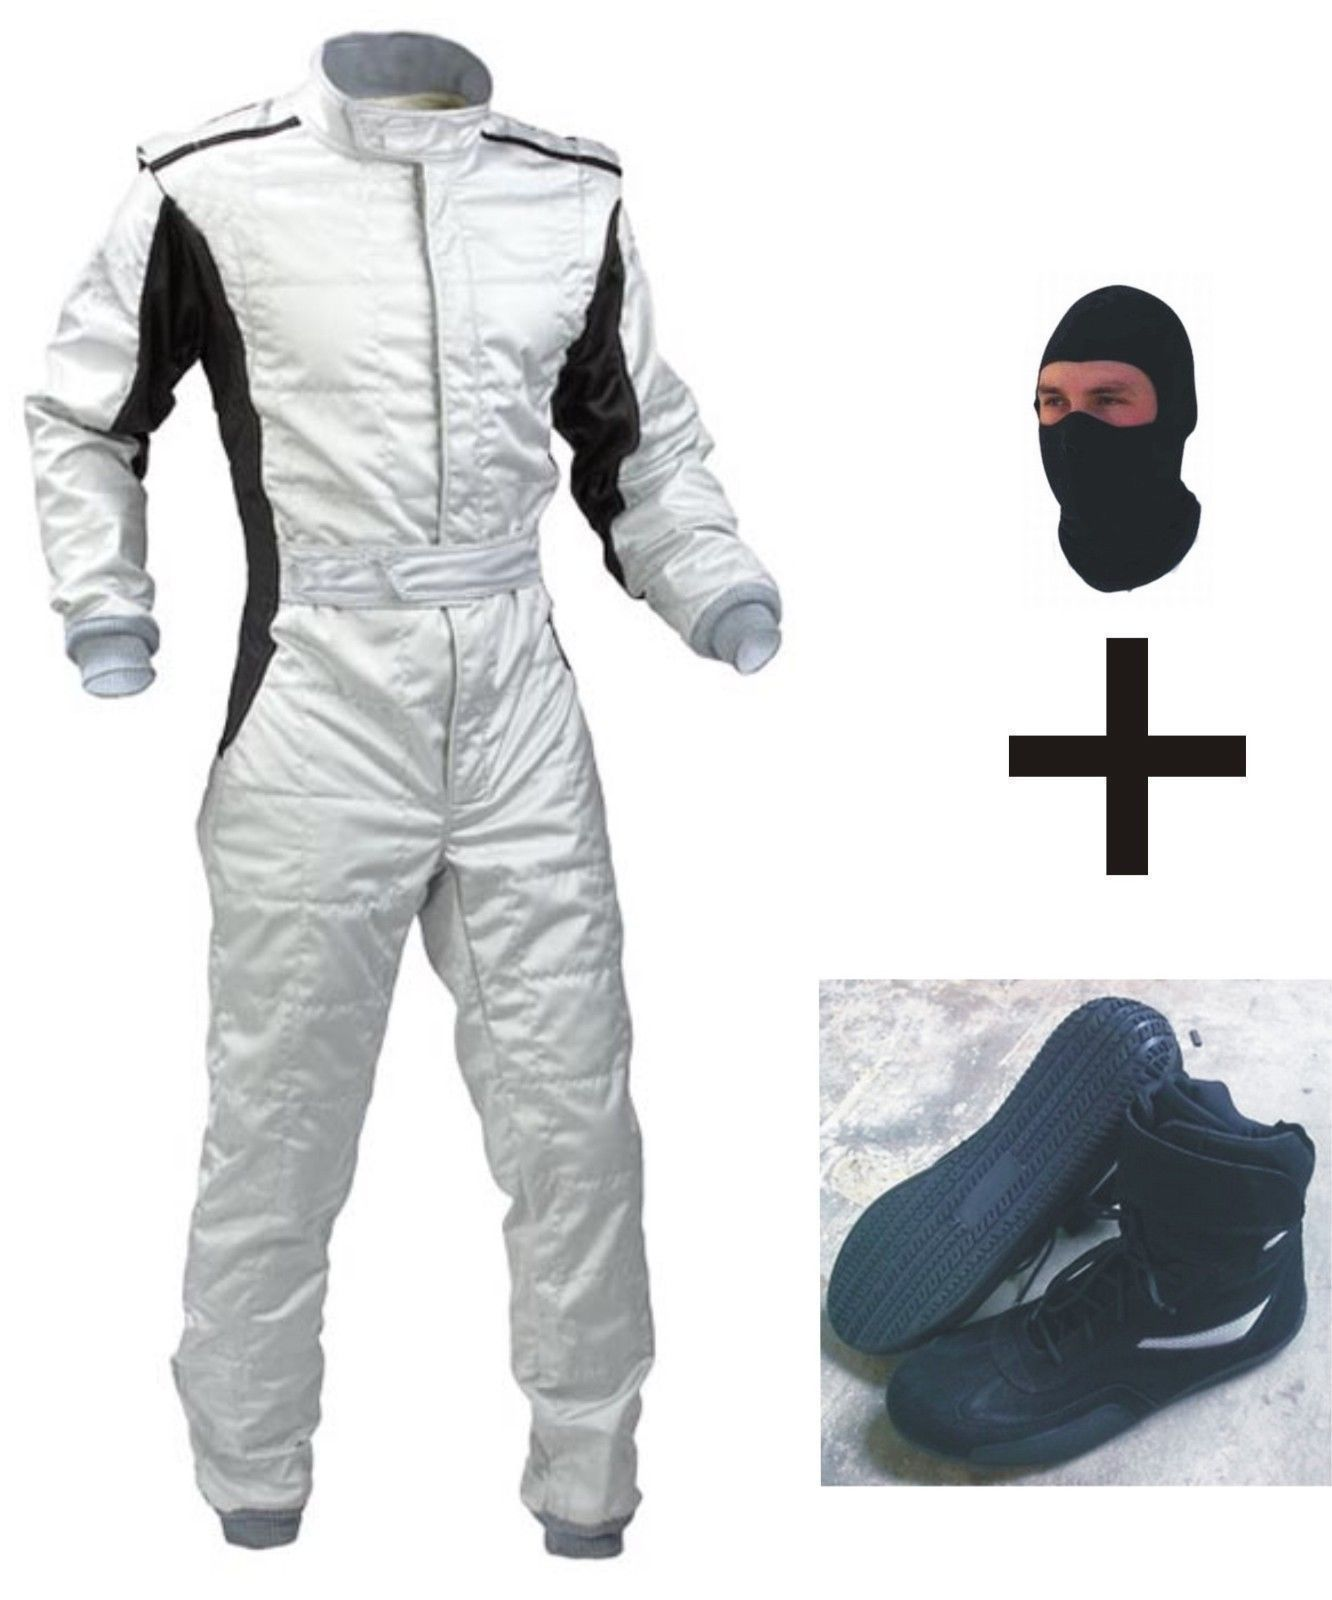 Latest Design Go Kart Race Suit Pack With Shoes (Free gifts included)